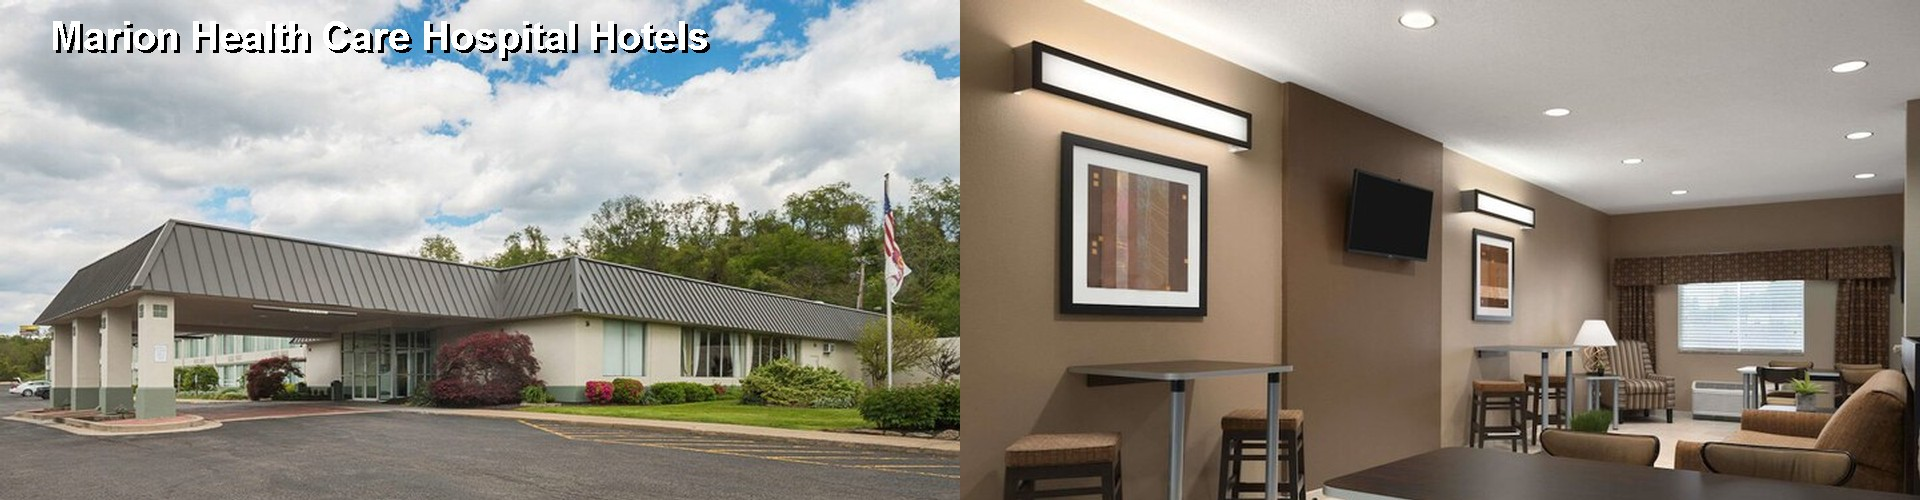 5 Best Hotels near Marion Health Care Hospital